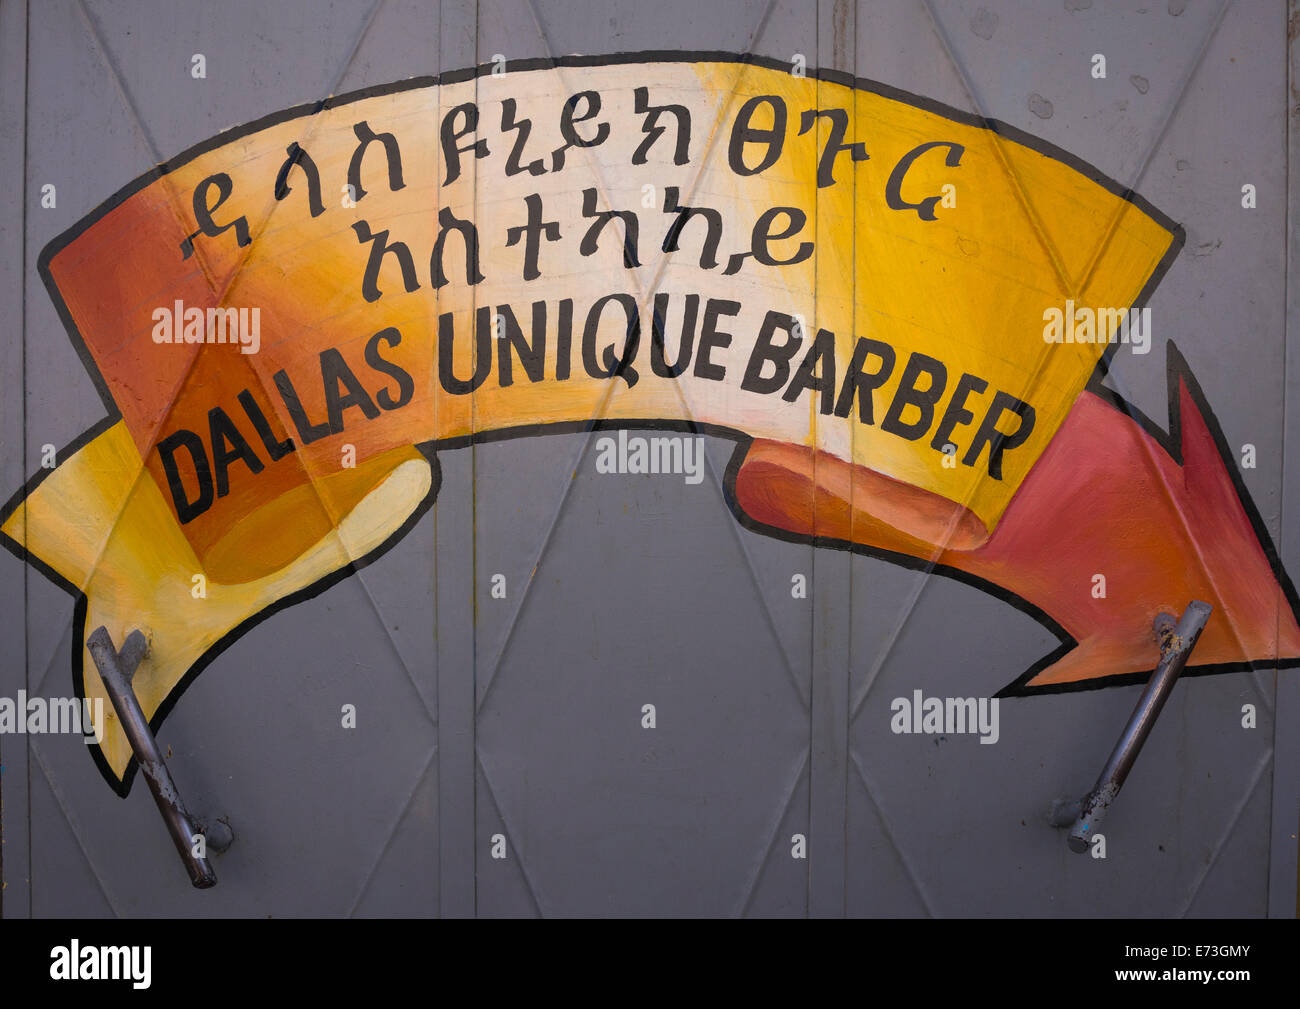 Painted Advertising For Barber Shop, Harar, Ethiopia - Stock Image